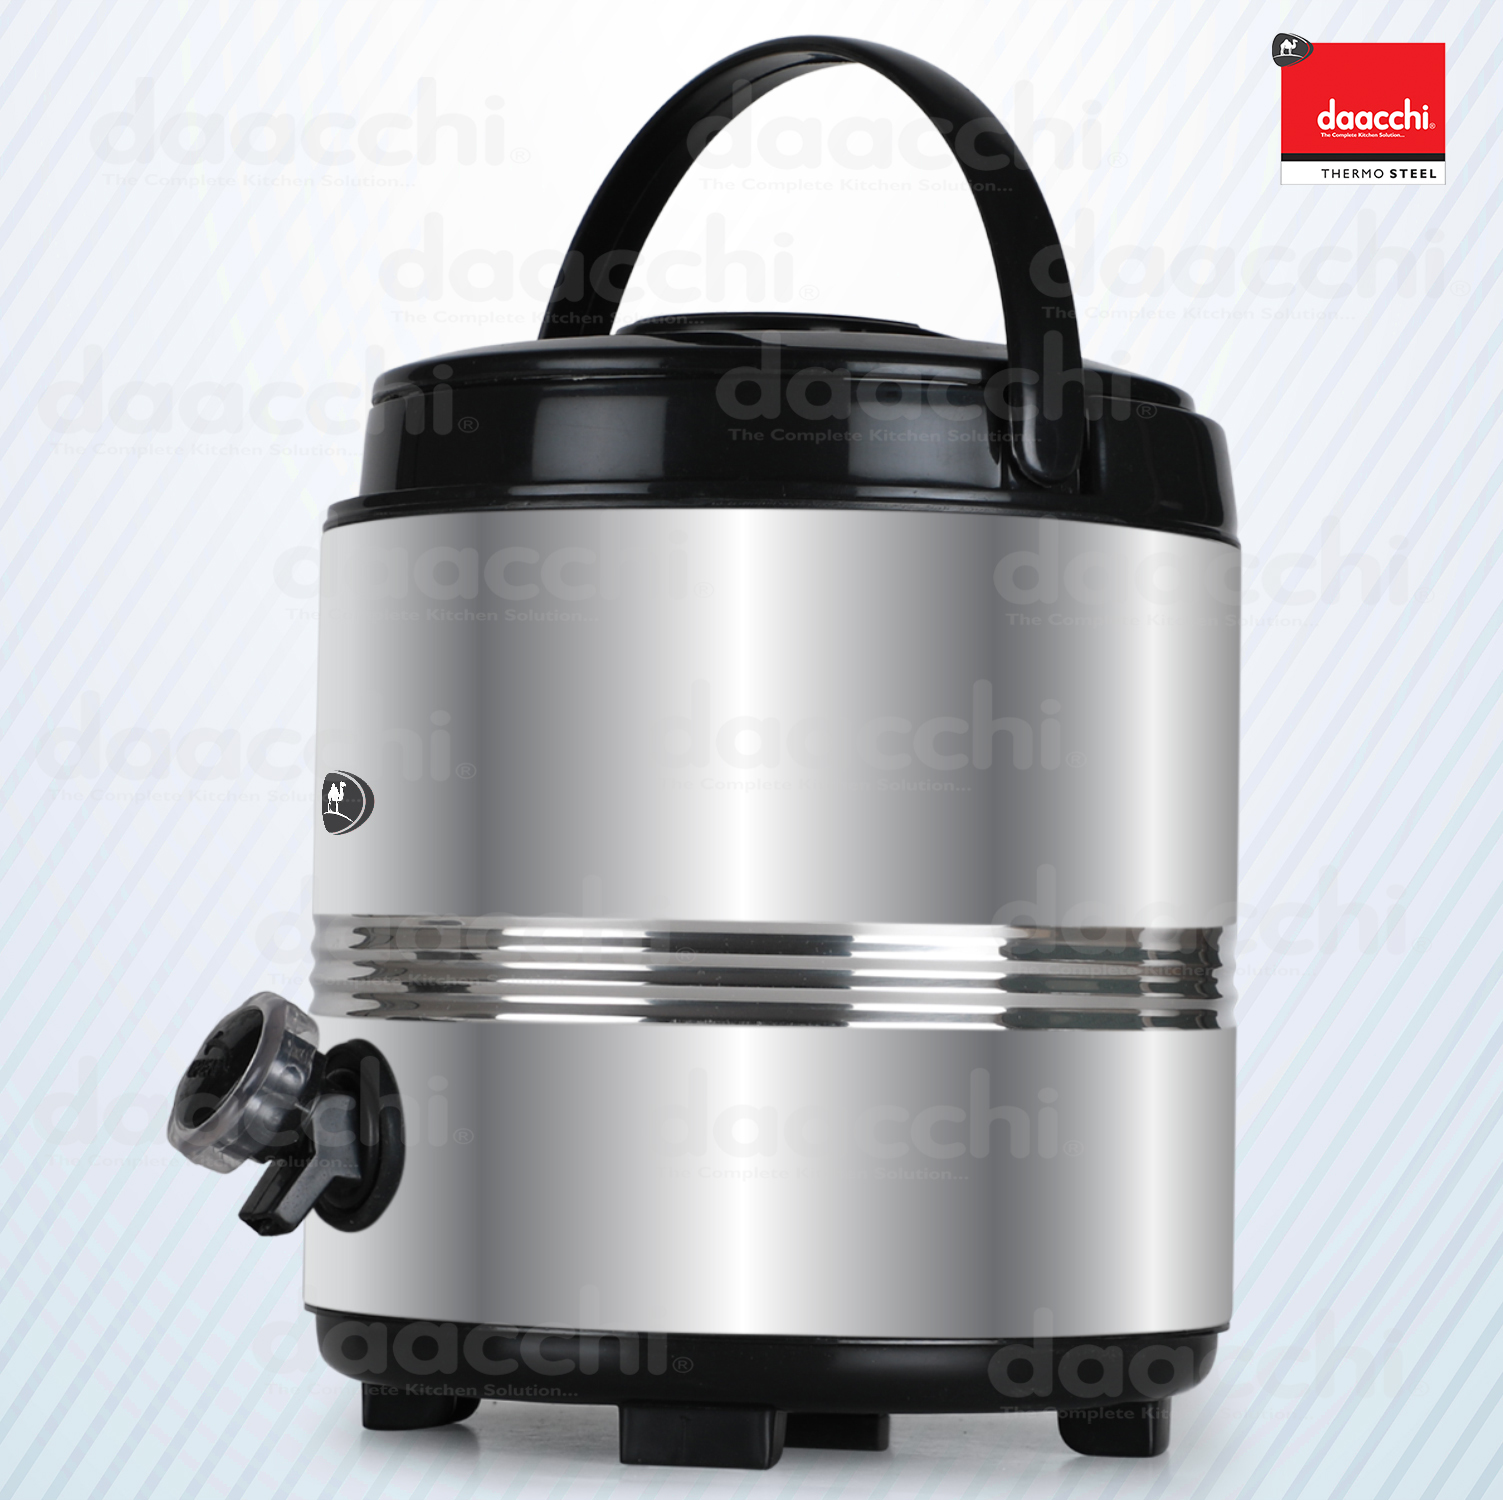 Insulated Stainless Steel Water Jug